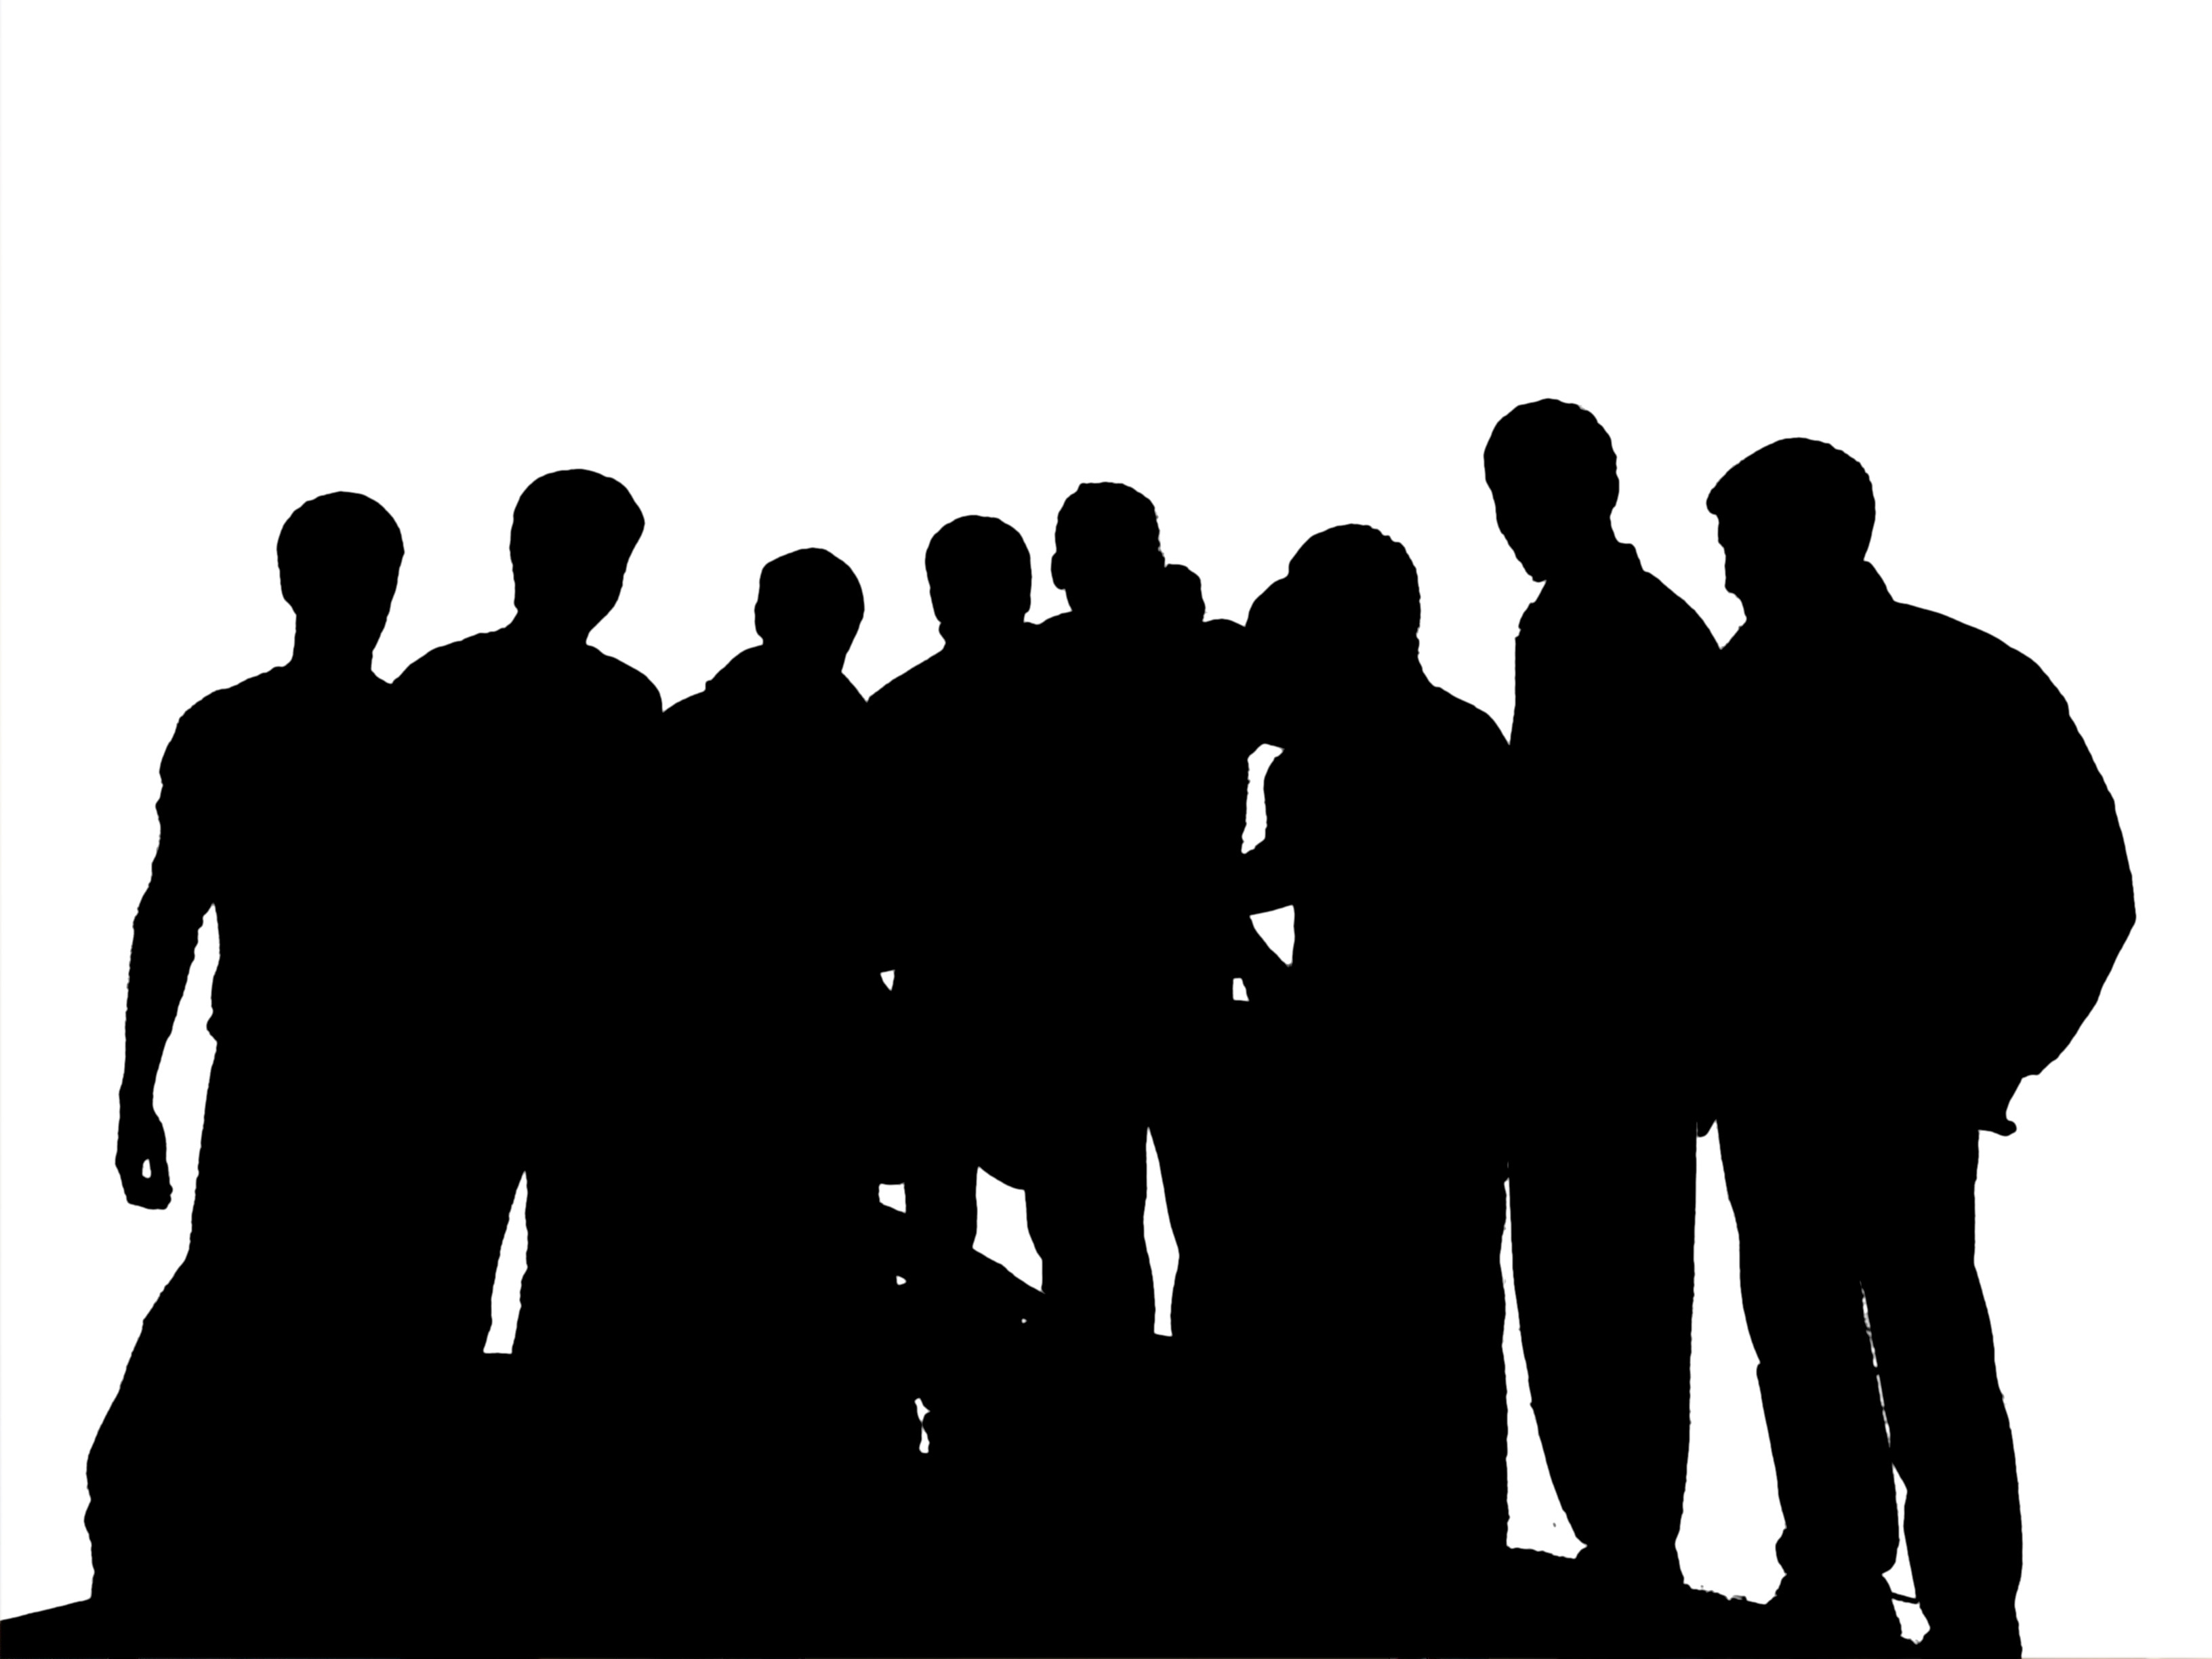 Free Pictures Of Groups Of People, Download Free Clip Art.